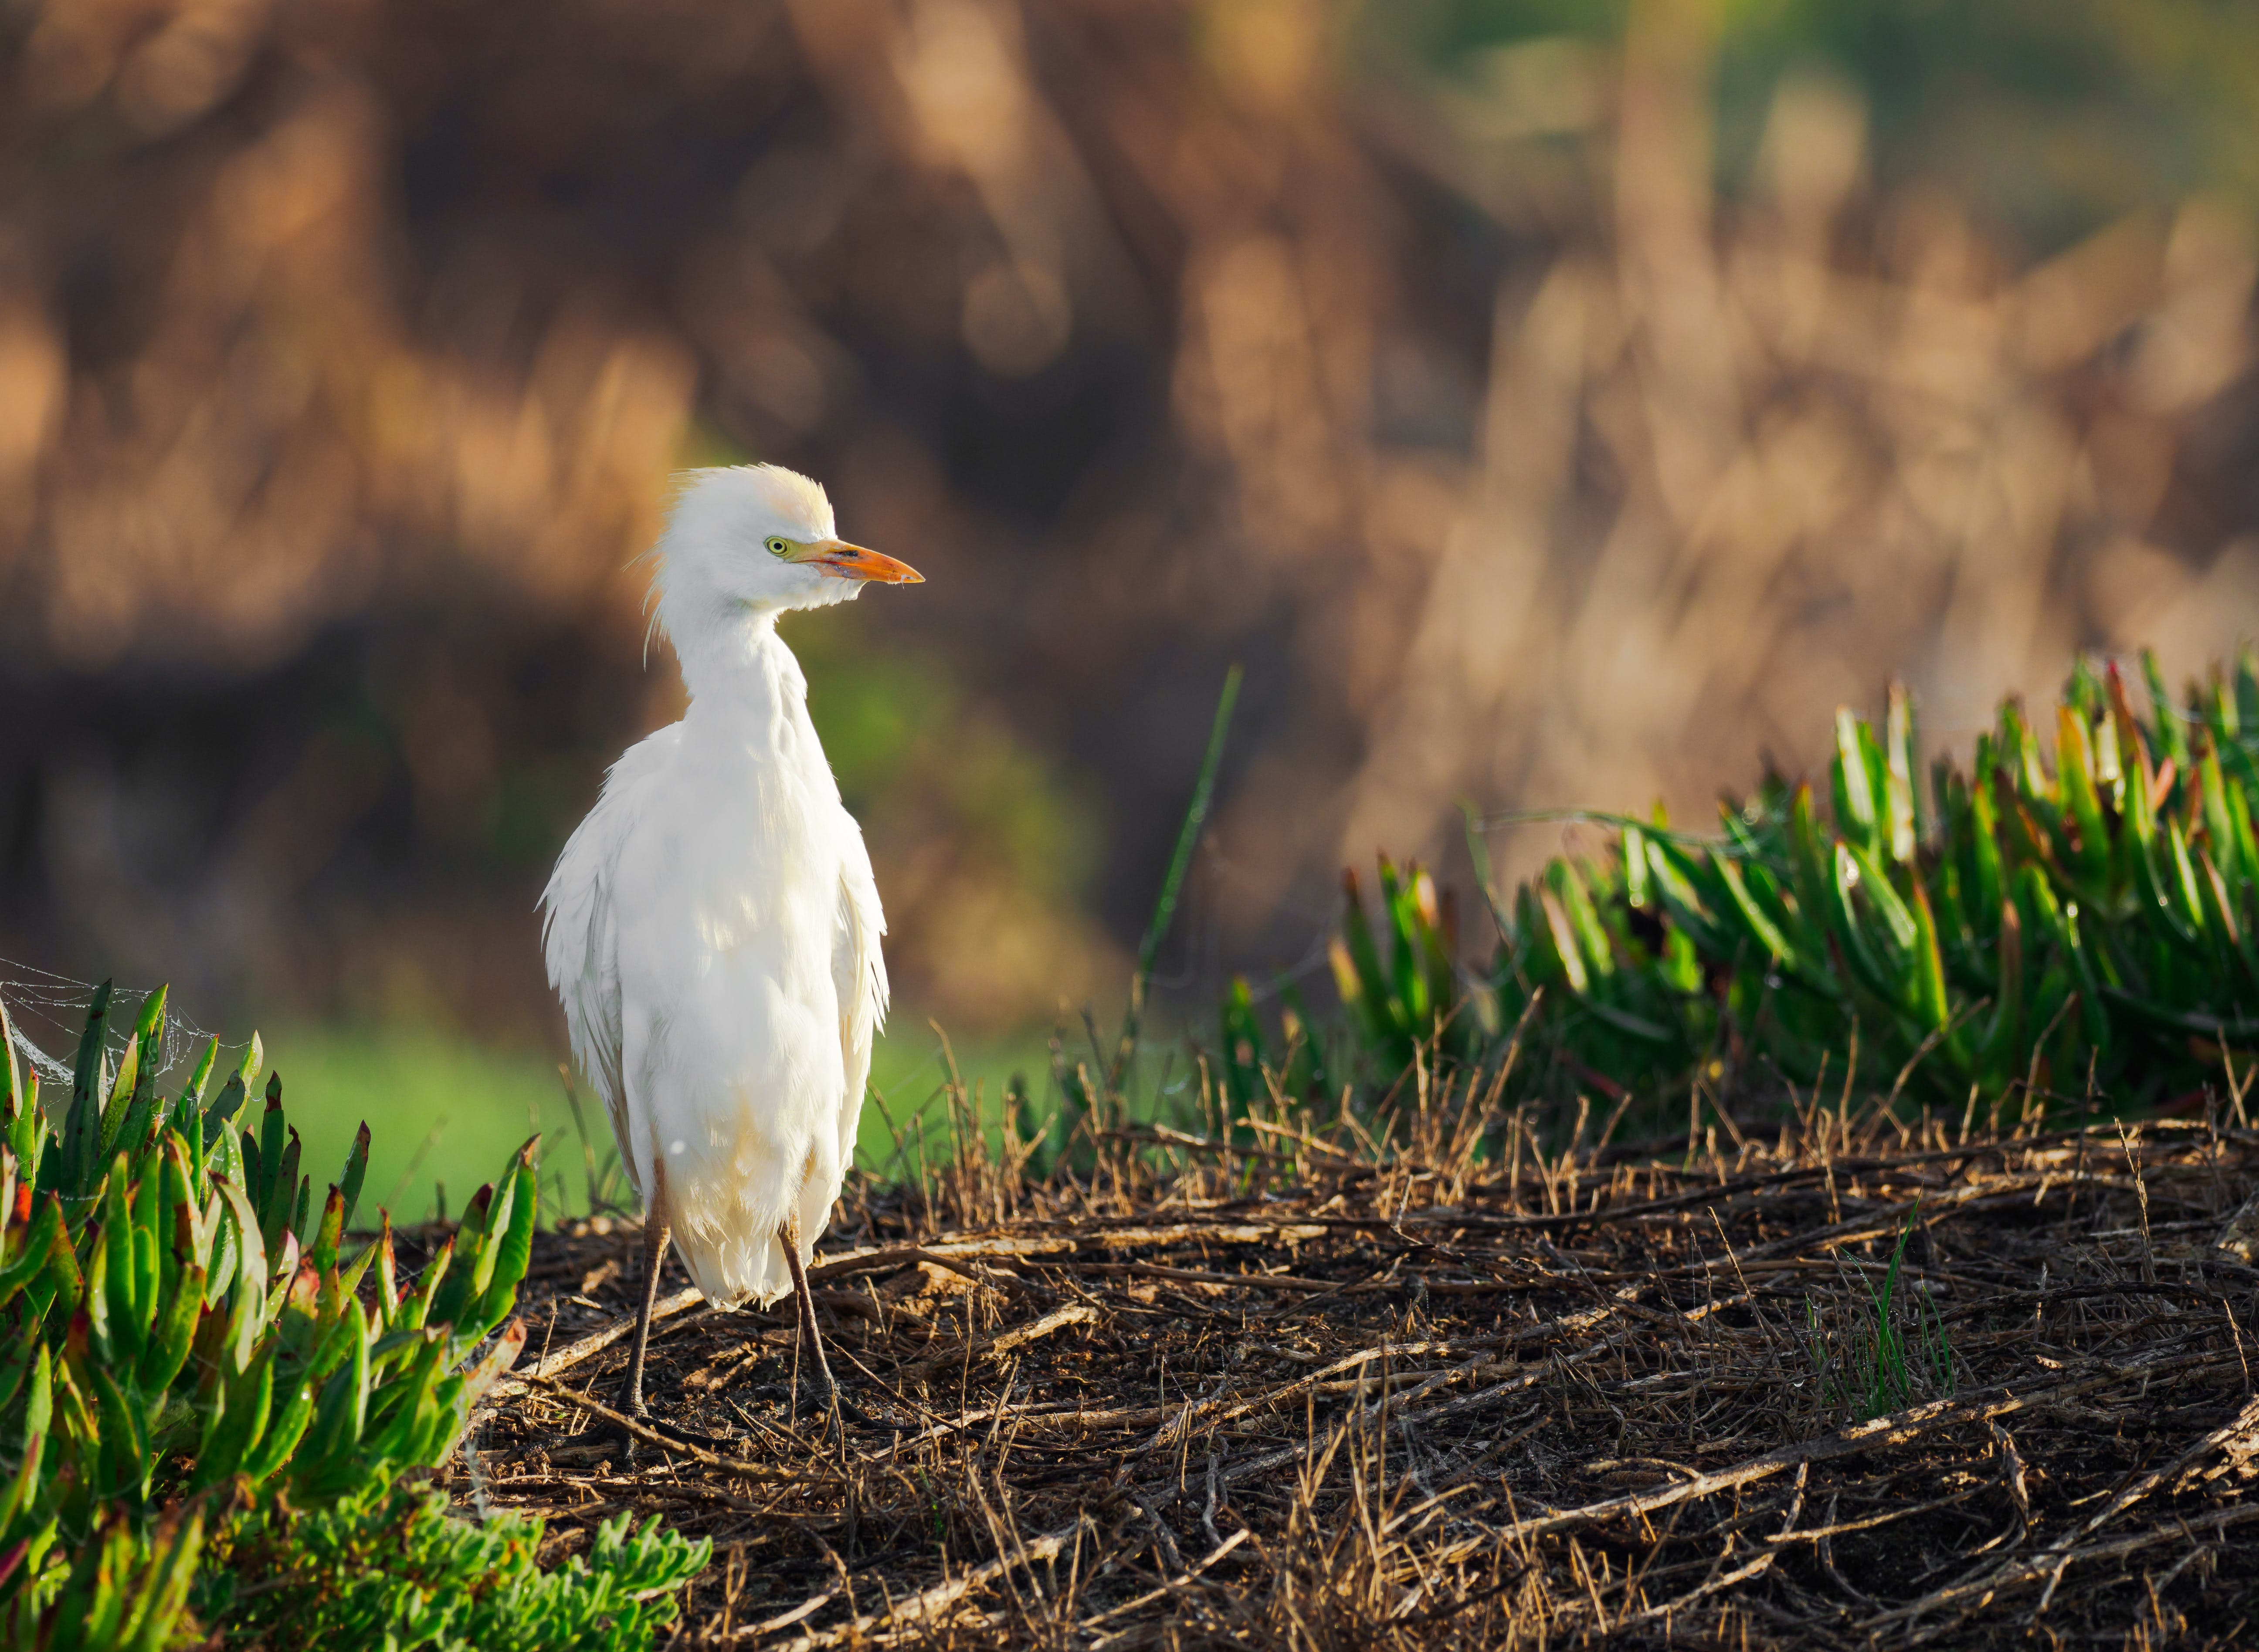 Selective Focus Photography of White Bird on Ground